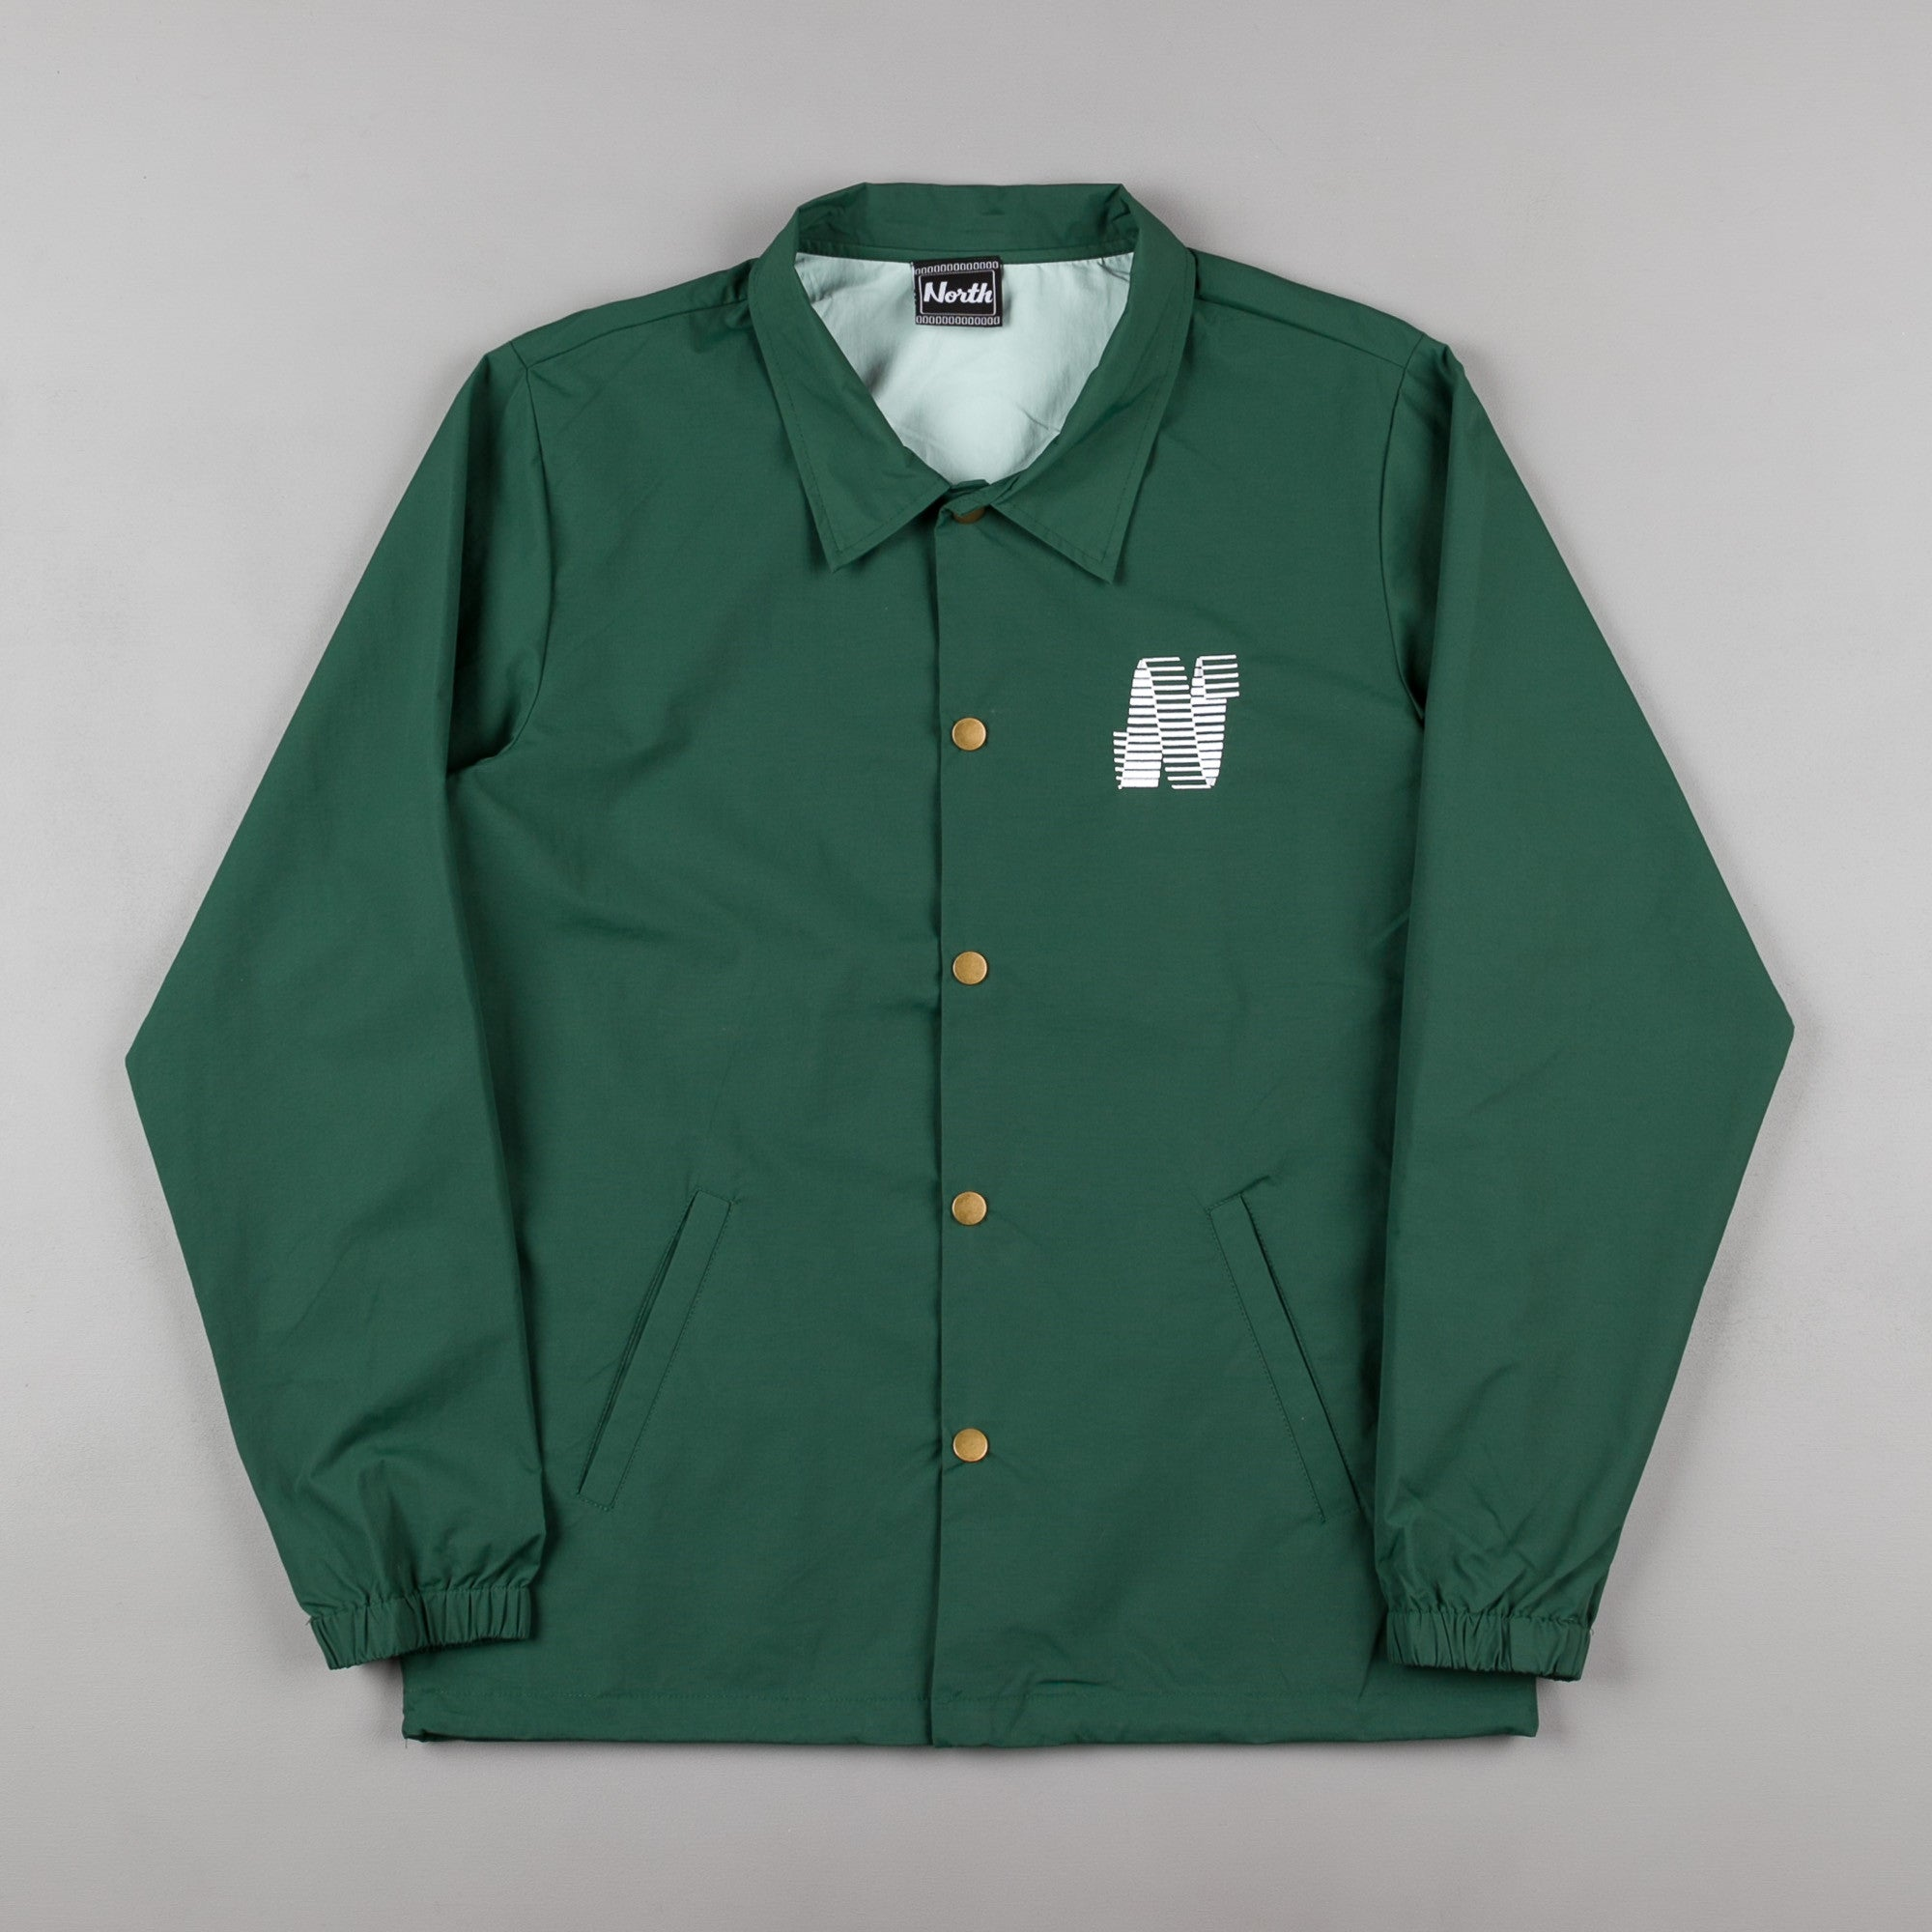 North Skateboard Magazine N Logo Coach Jacket - Green